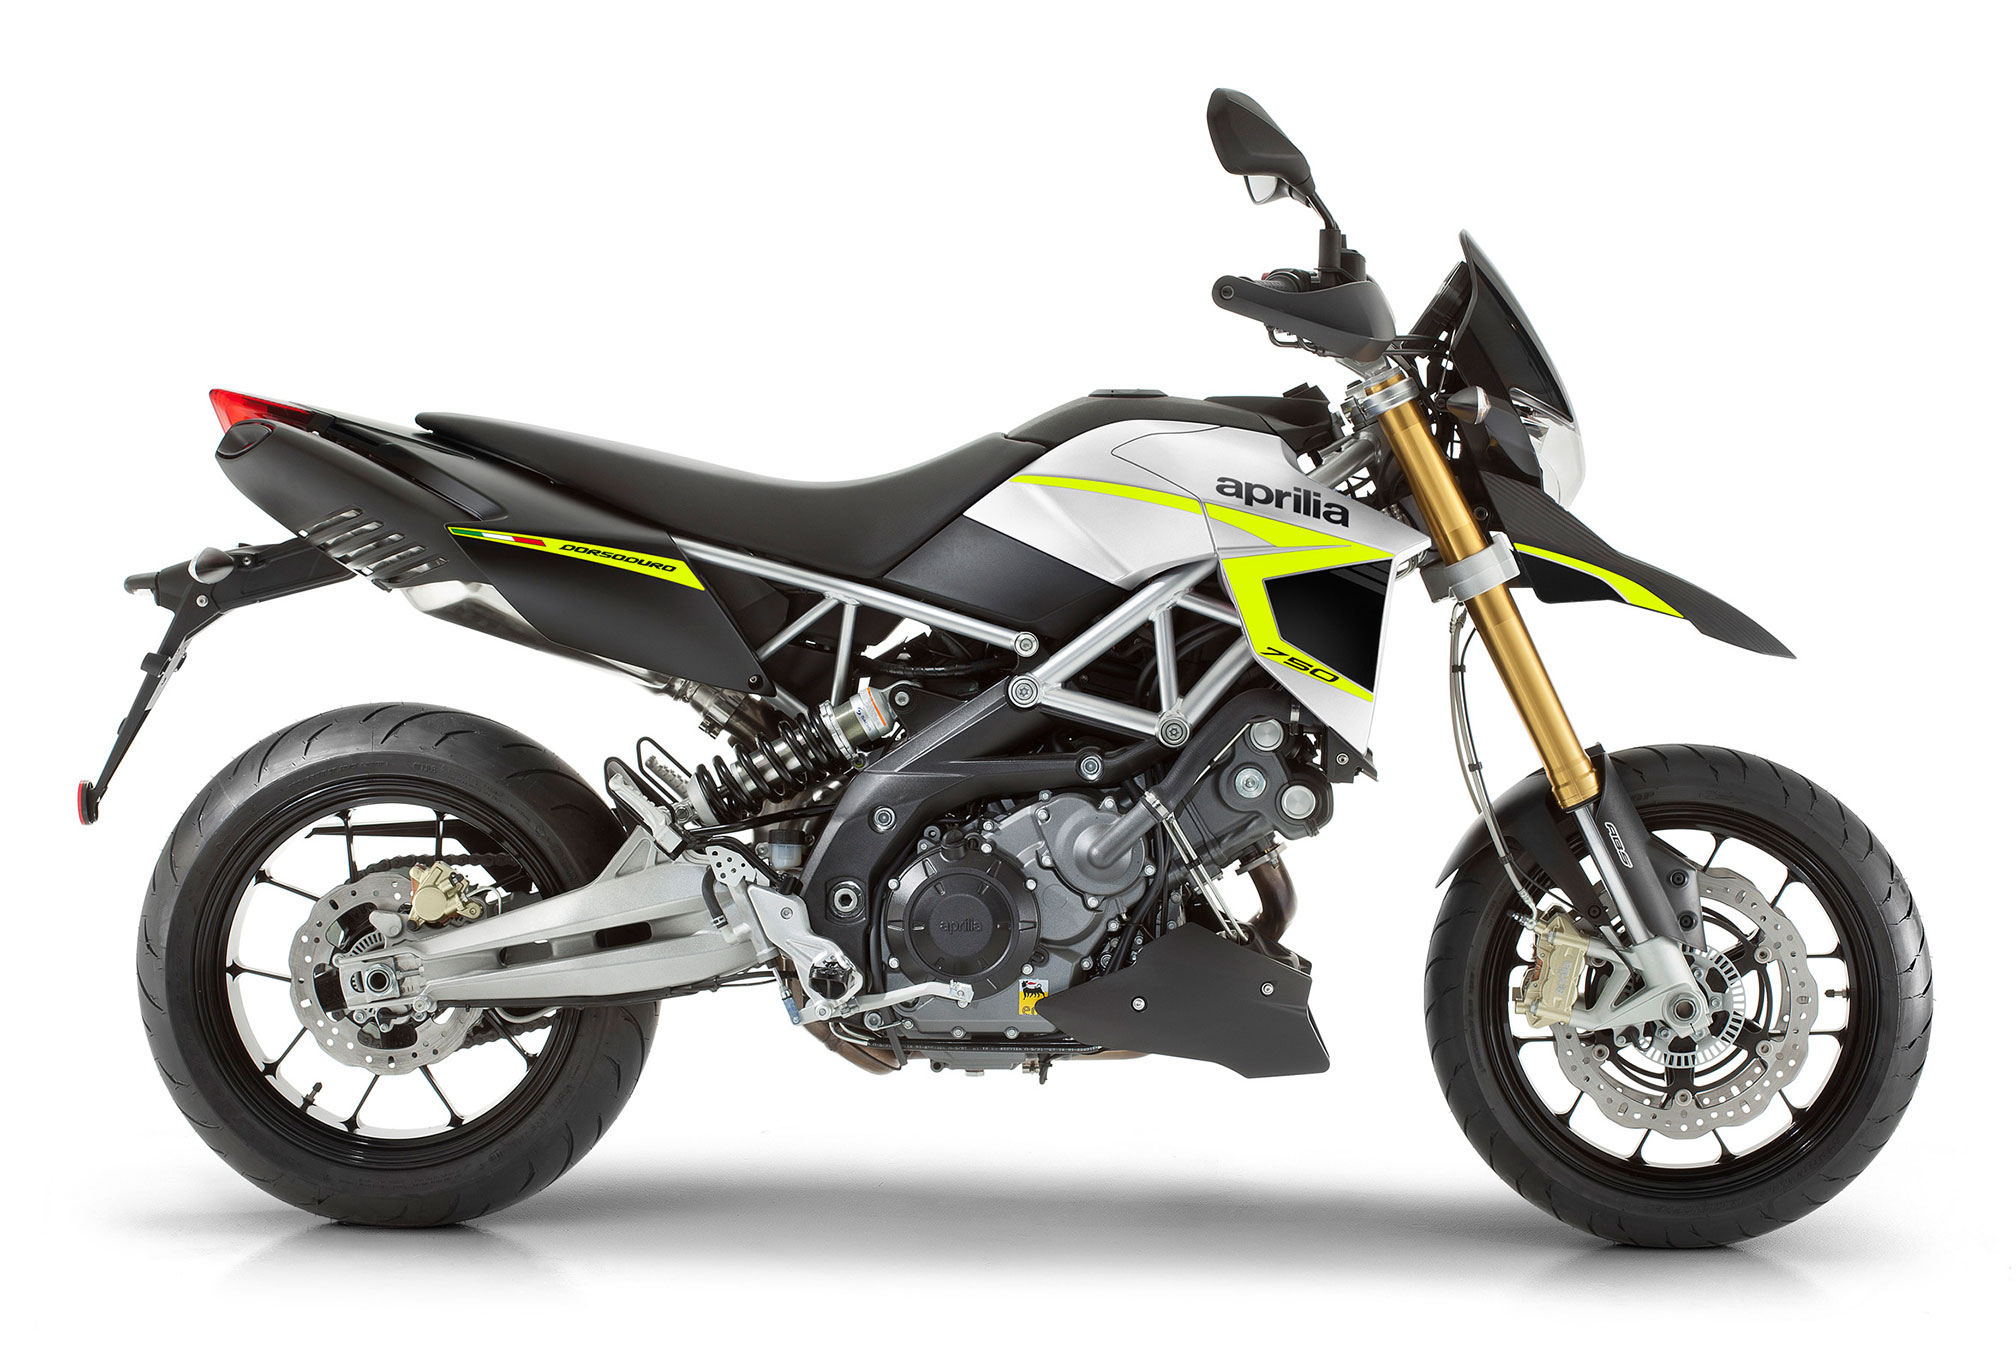 2016 Aprilia Dorsoduro 750 ABS Review